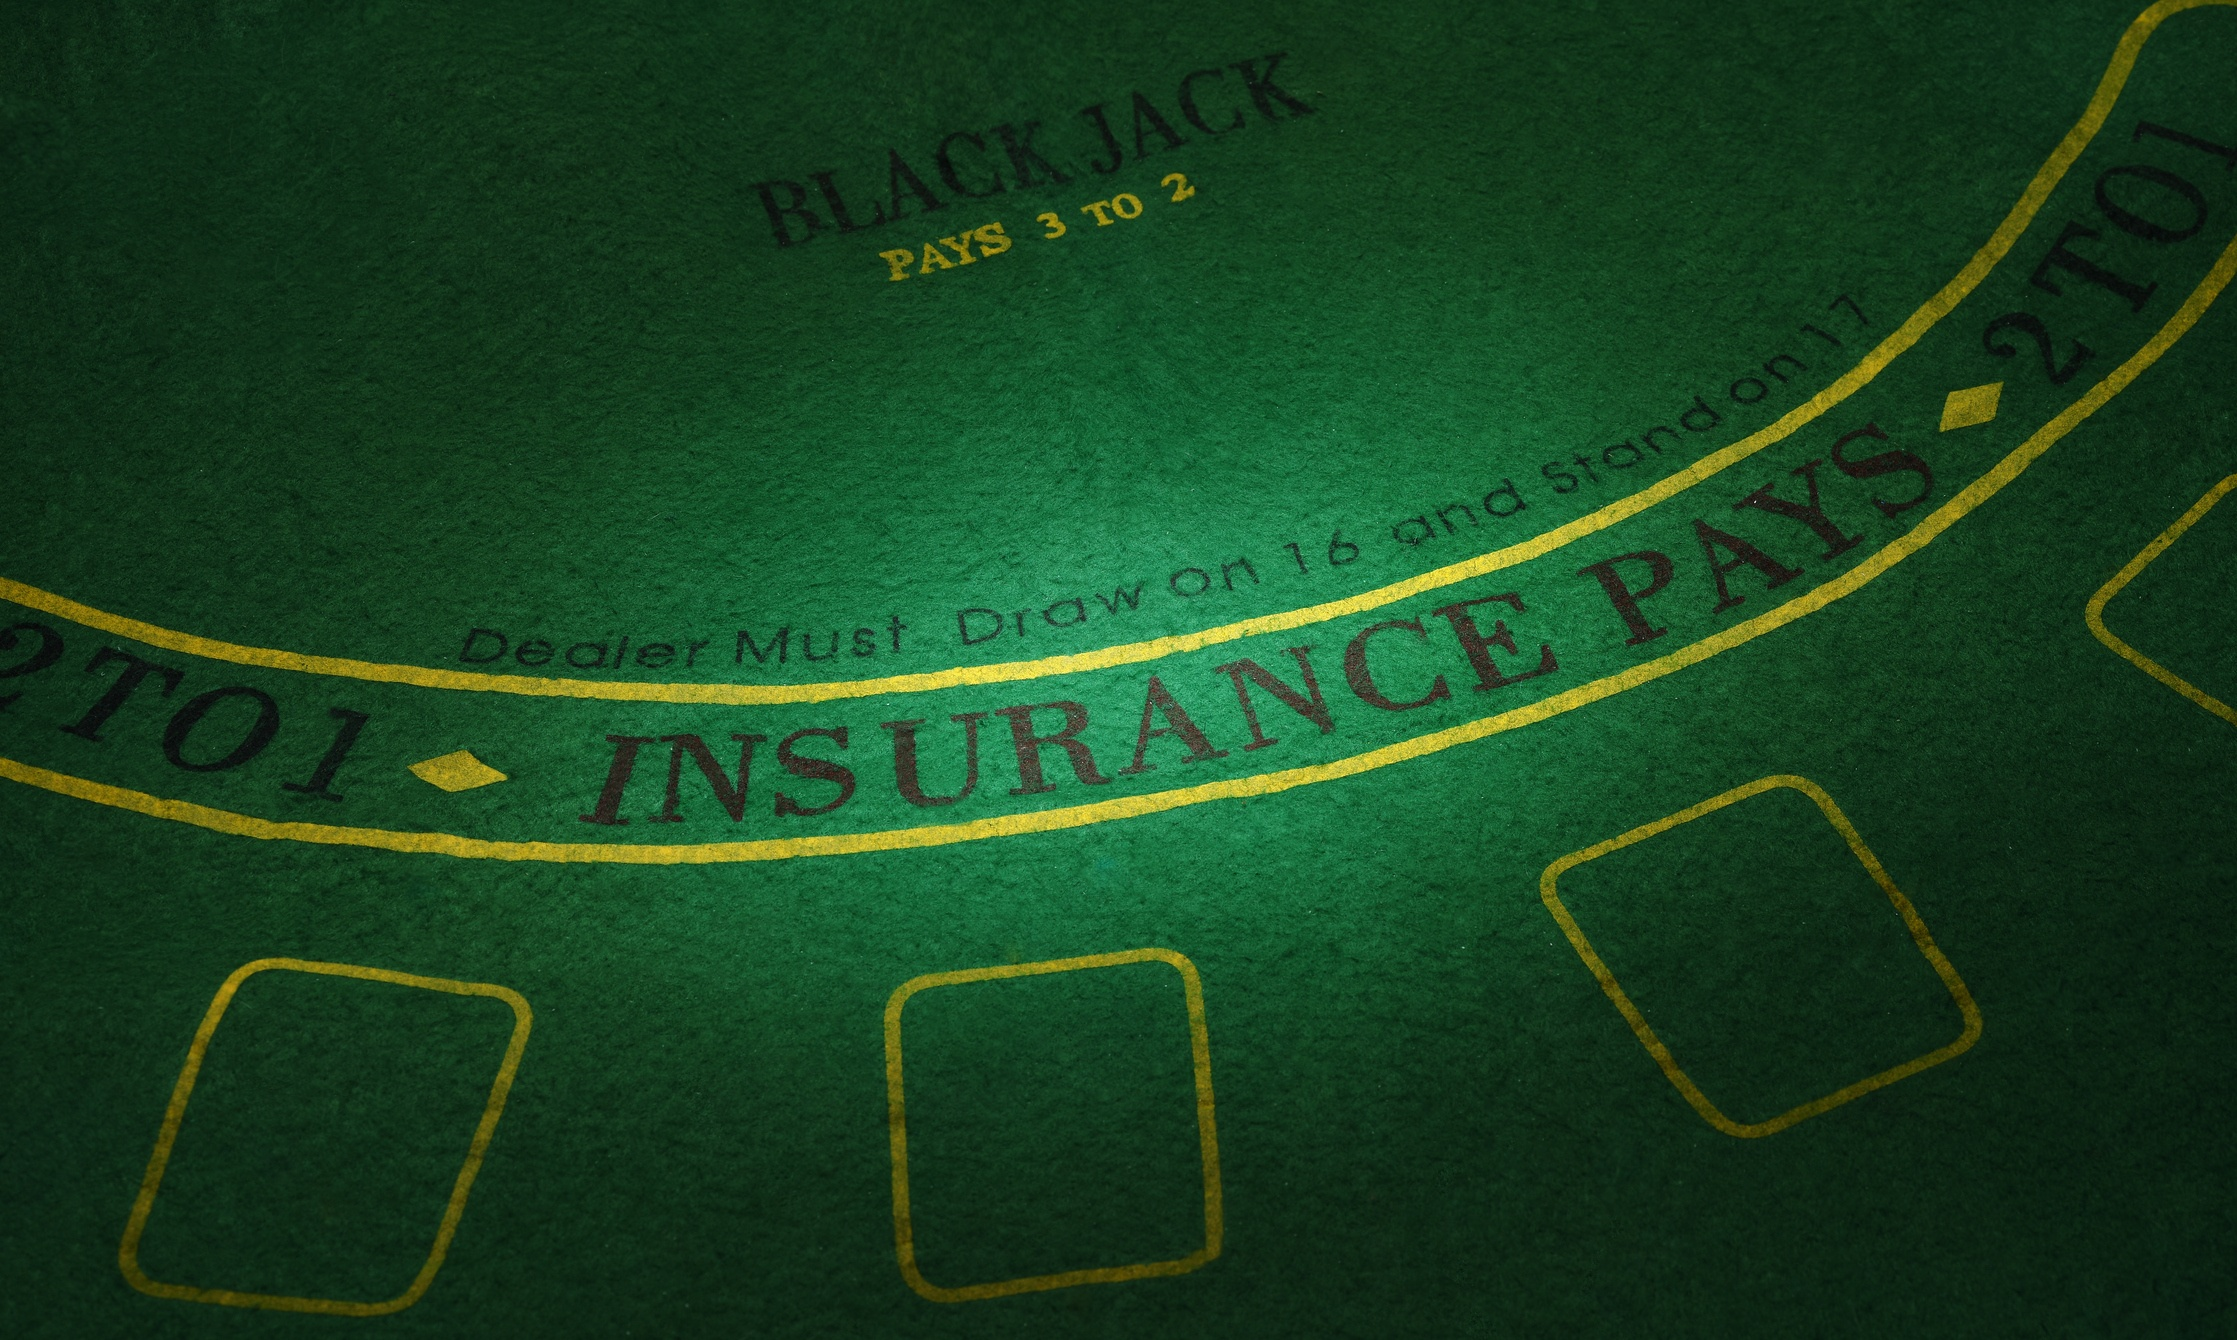 photo showing most popular blackjack game table layout